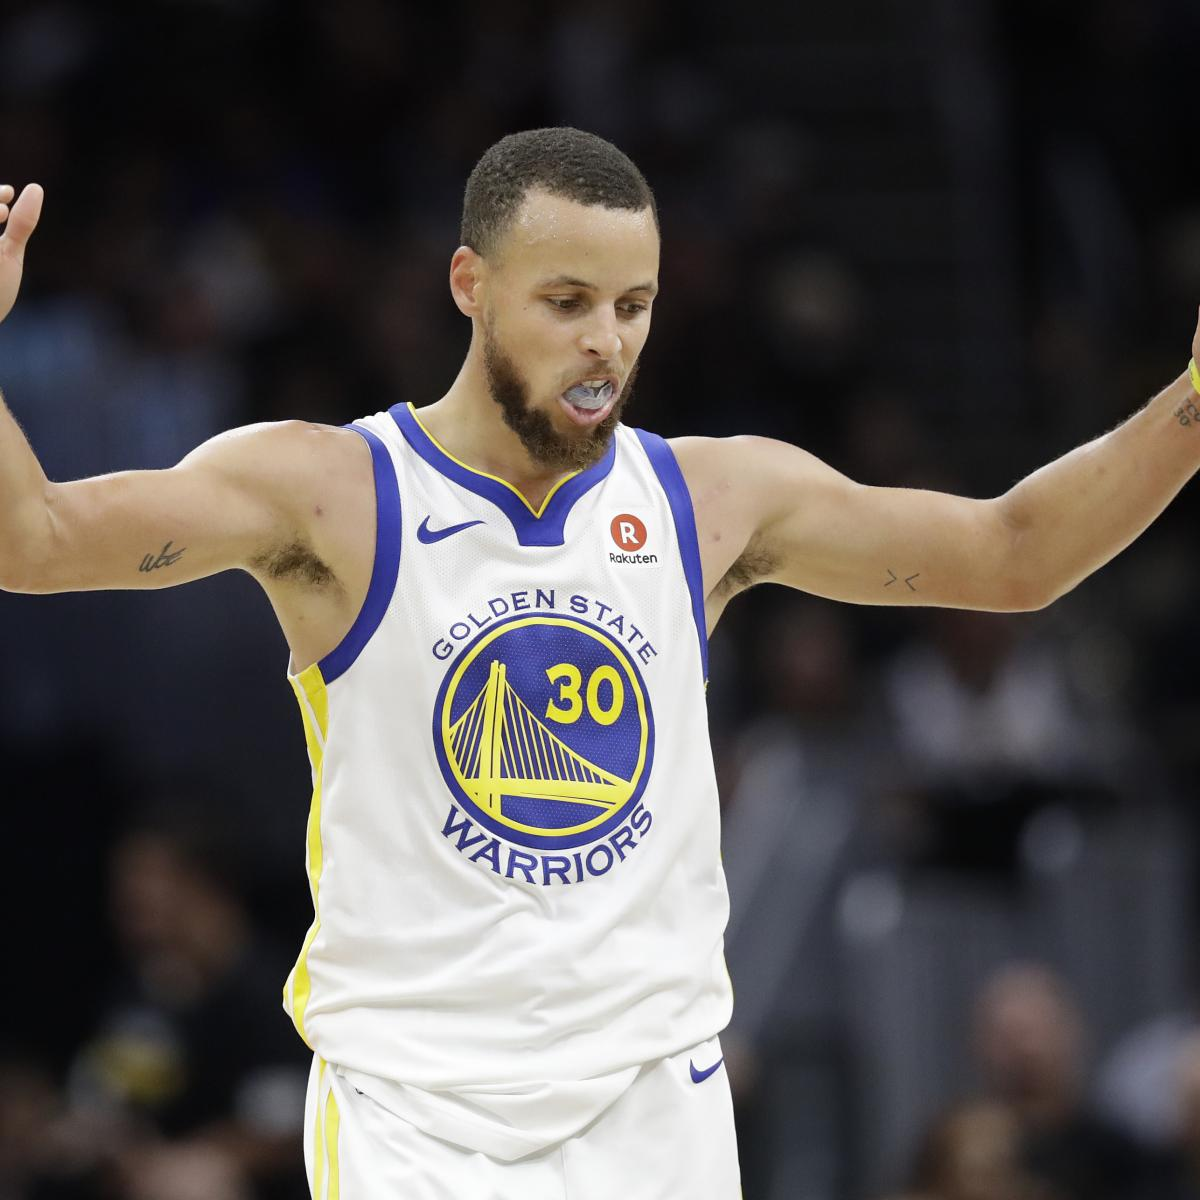 Warriors Youth Basketball Camp: Stephen Curry Hosts Basketball Camp For 200 Girls: 'It Was